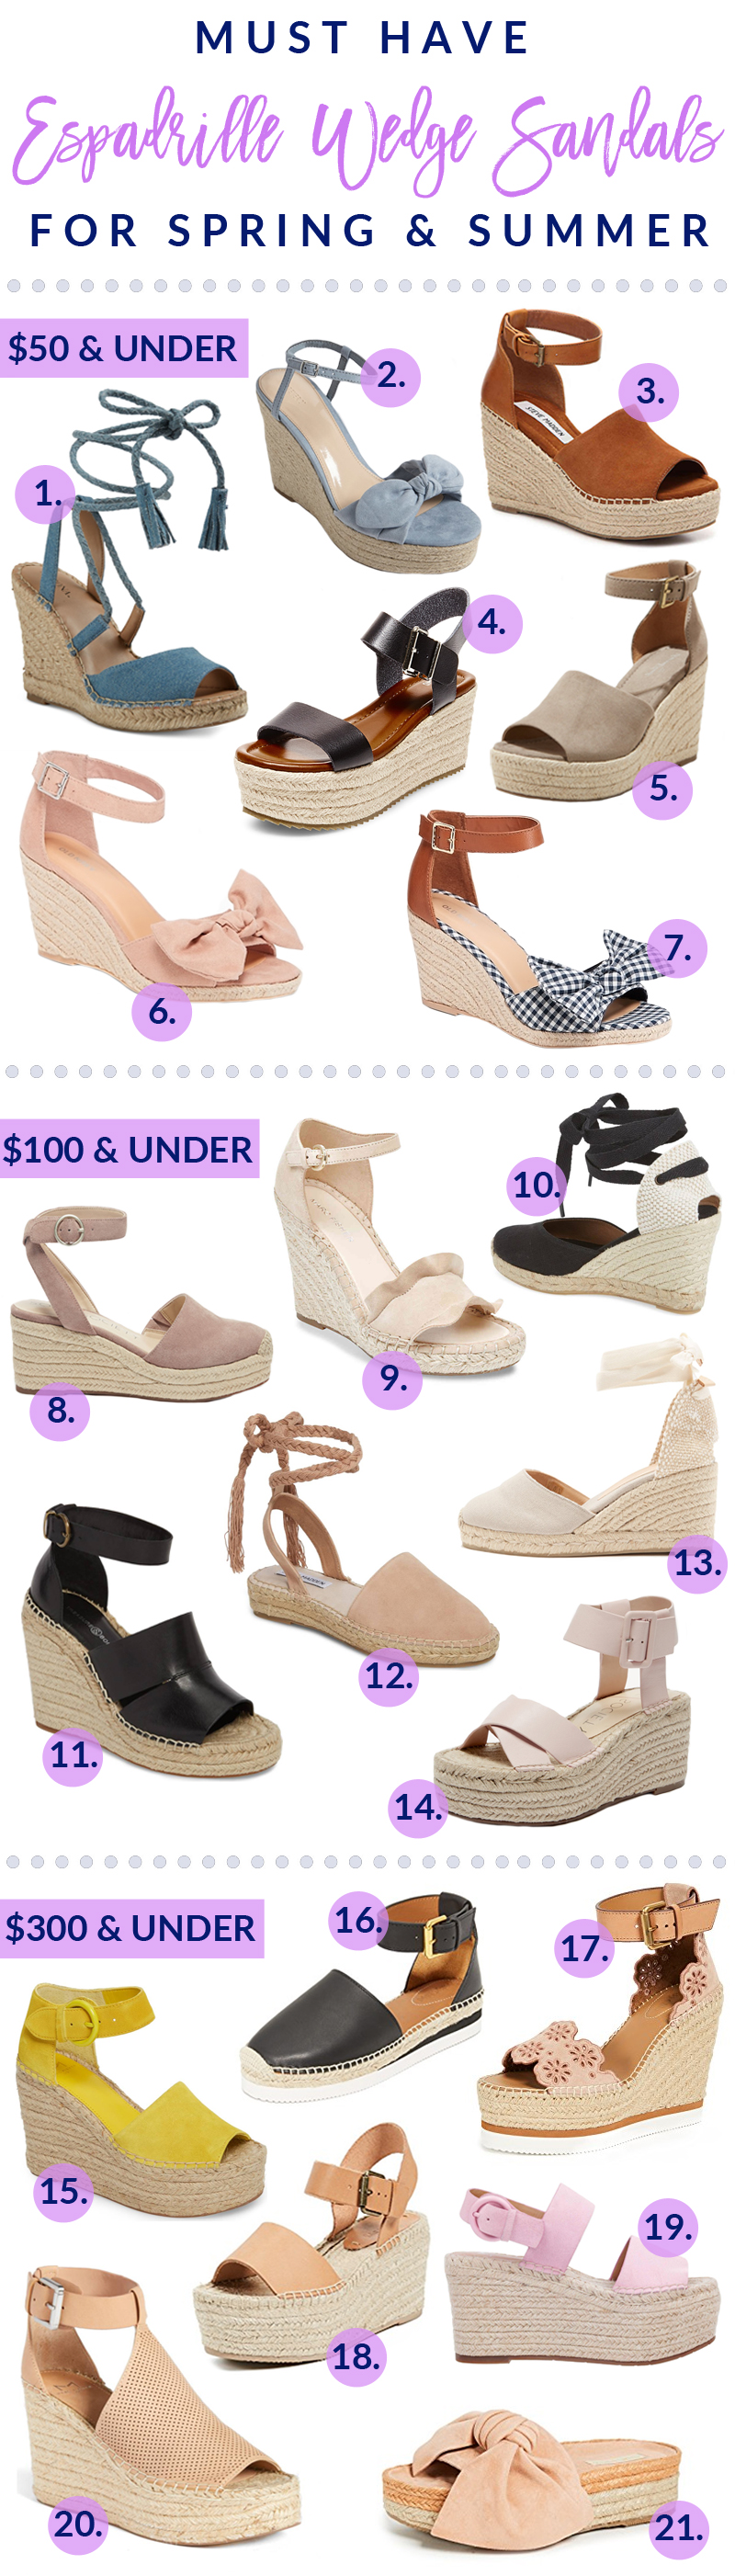 Must Have Espadrille Wedge Sandals For Spring & Summer by popular Utah style blogger Sandy A La Mode